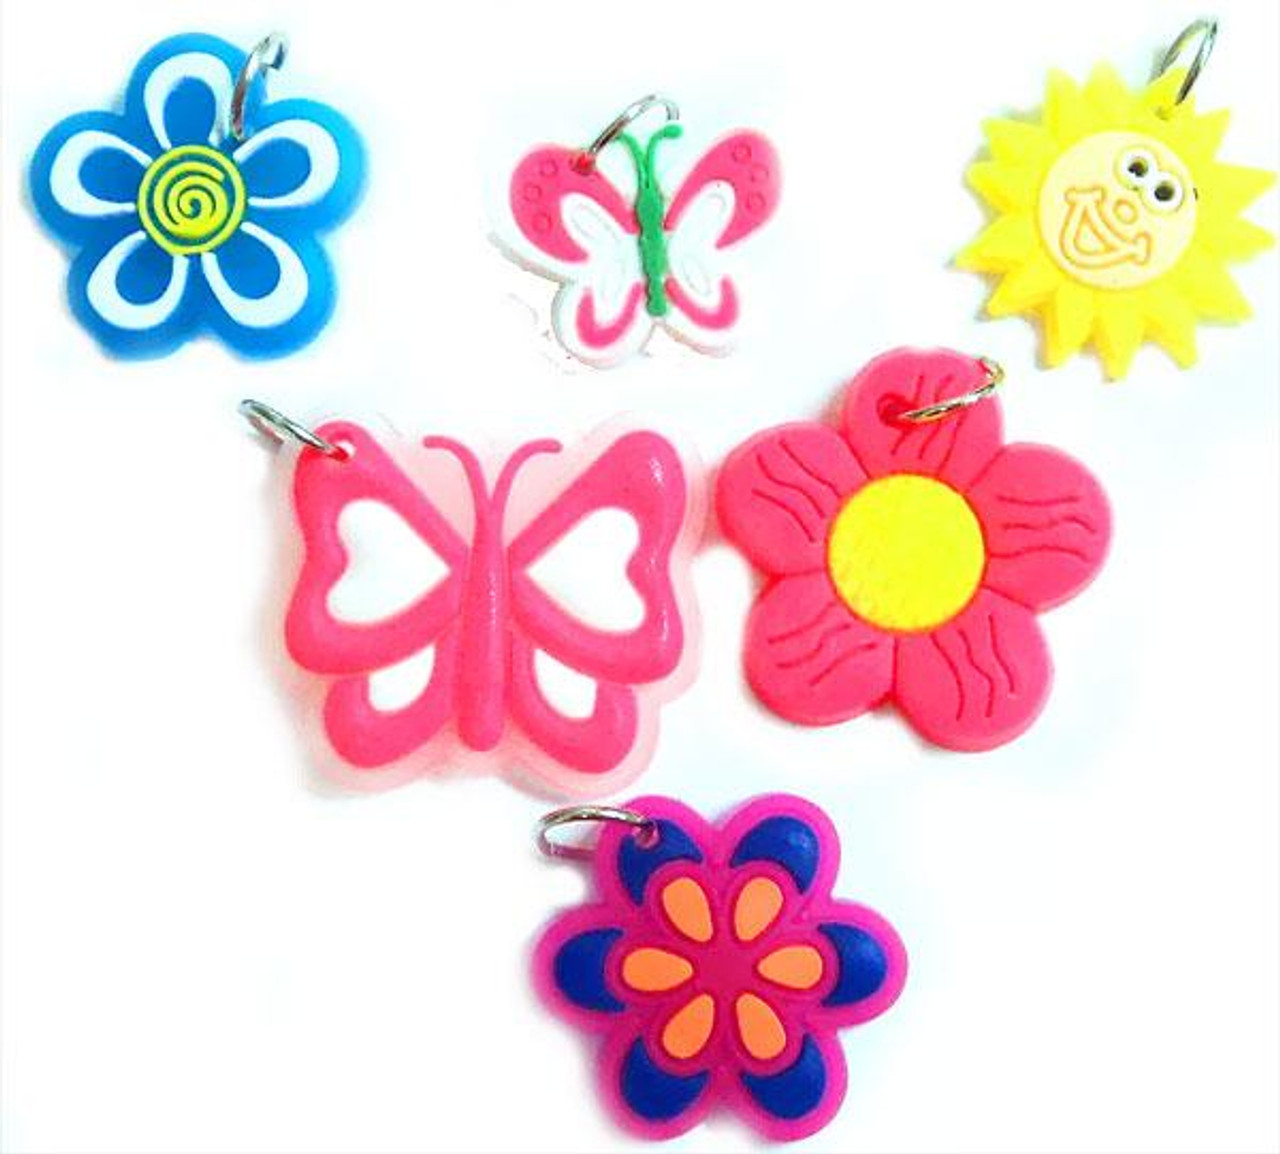 Rubber Band Bracelets Sun, Flowers & Butterfly Chams Charms [6 ct]